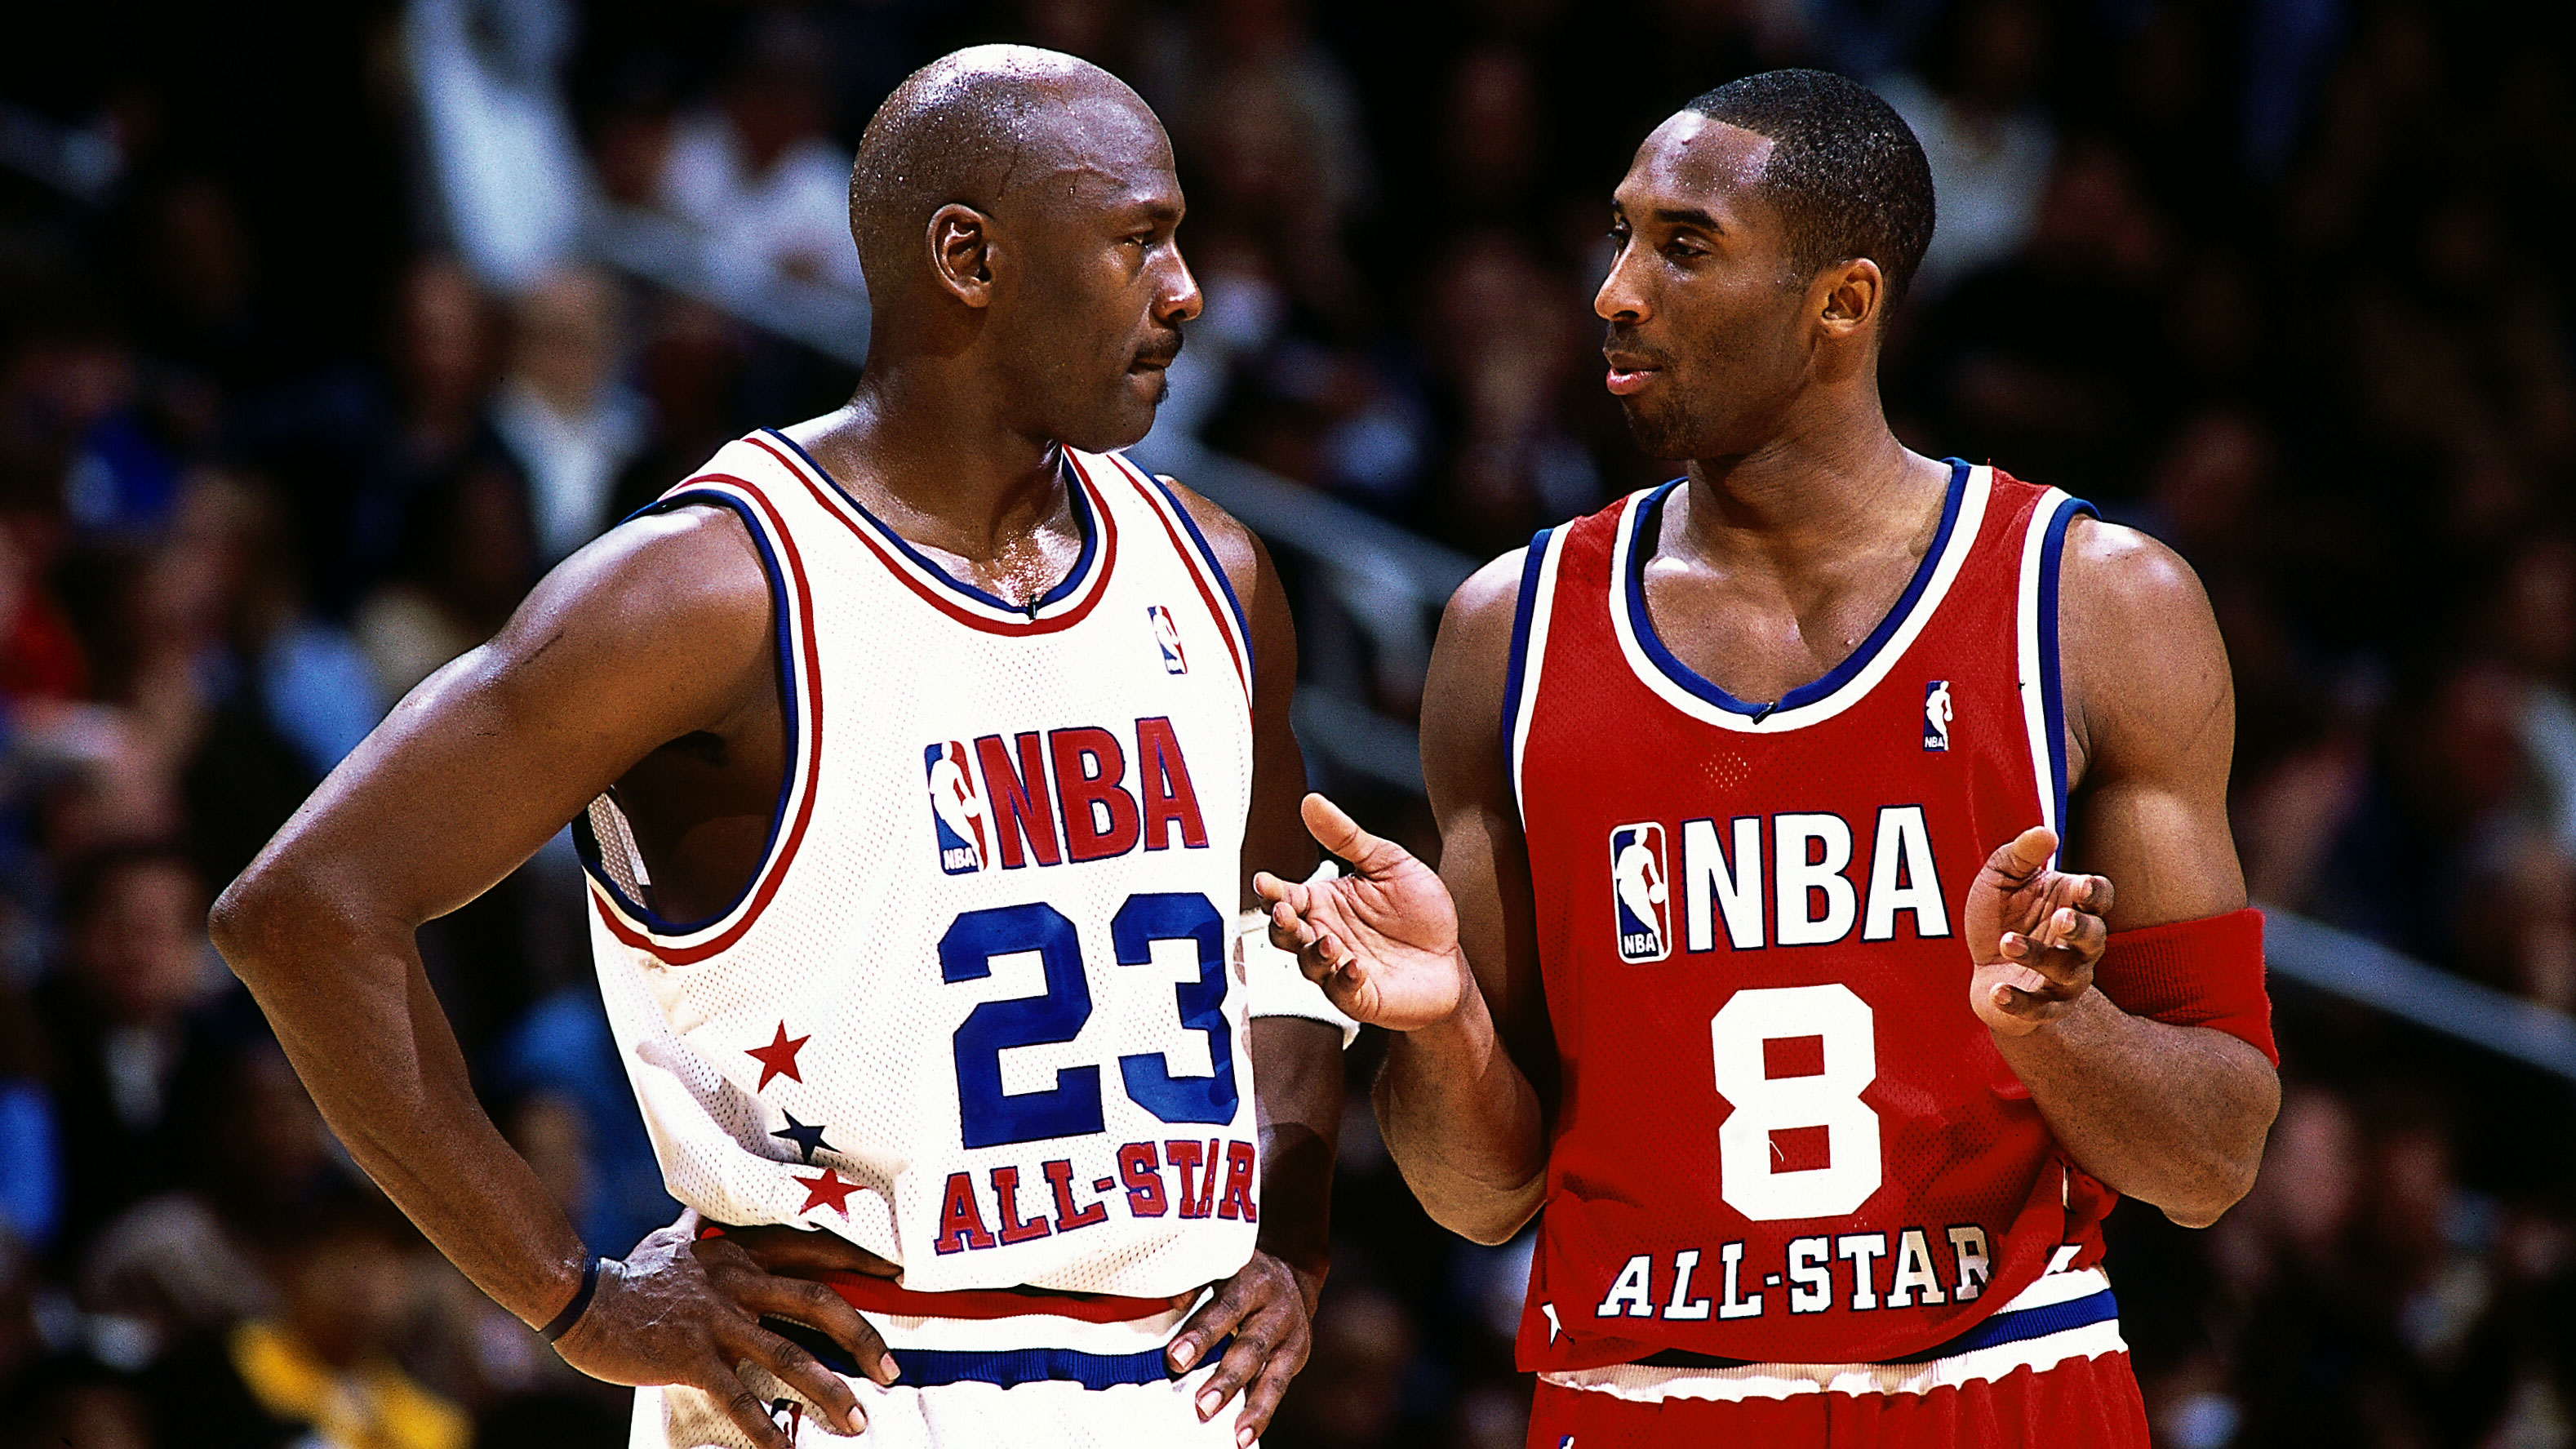 zkxoma Kobe Bryant, Michael Jordan dueled in 2003 All Star Game | SI.com